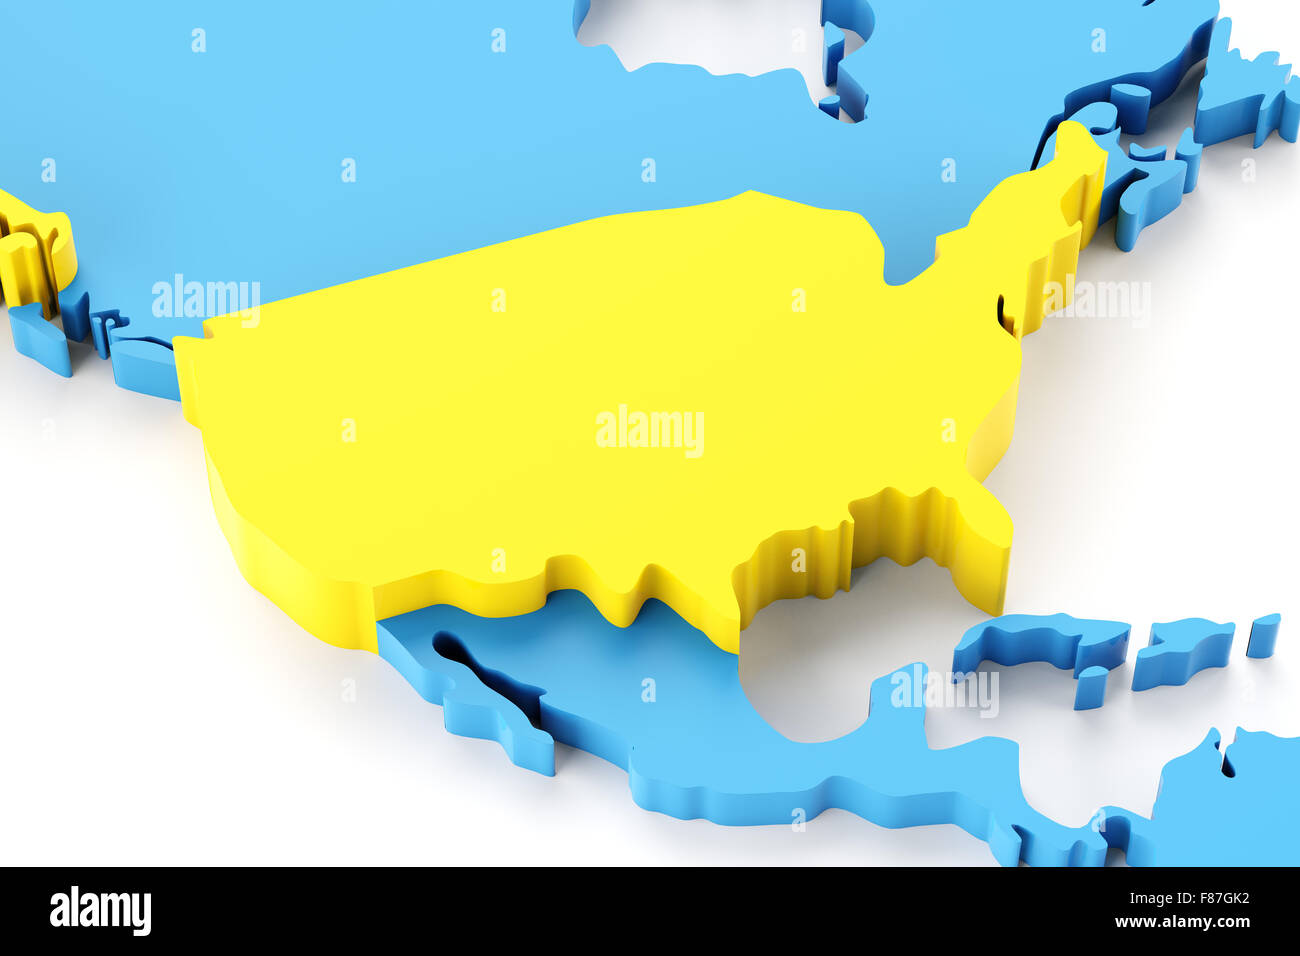 Map of north america with usa highlighted stock photo 91135830 alamy map of north america with usa highlighted gumiabroncs Image collections